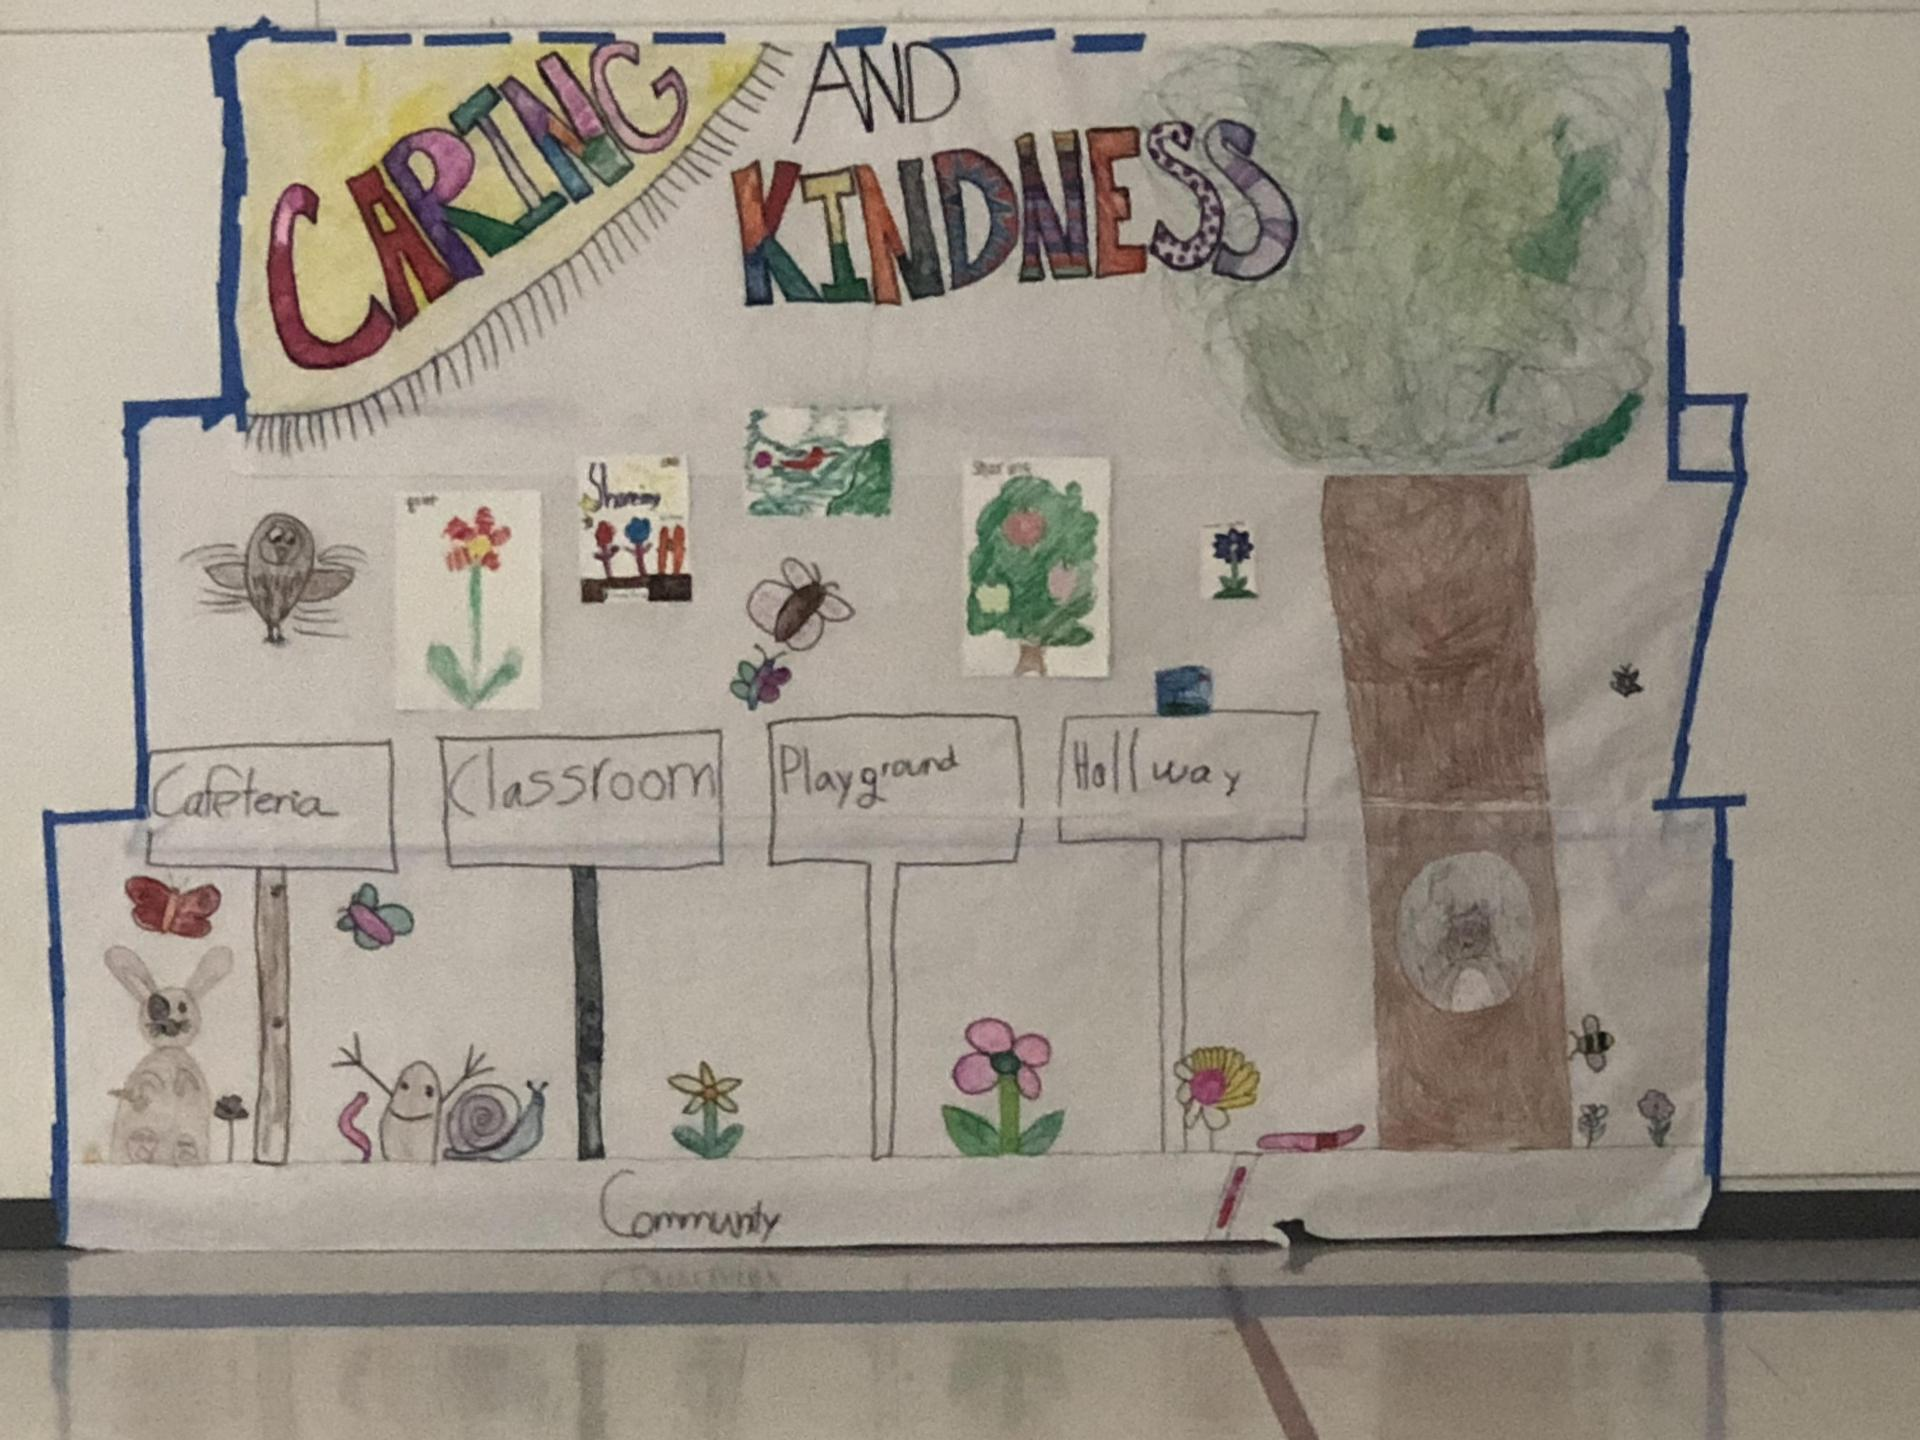 Life Skill poster of Caring & Kindness